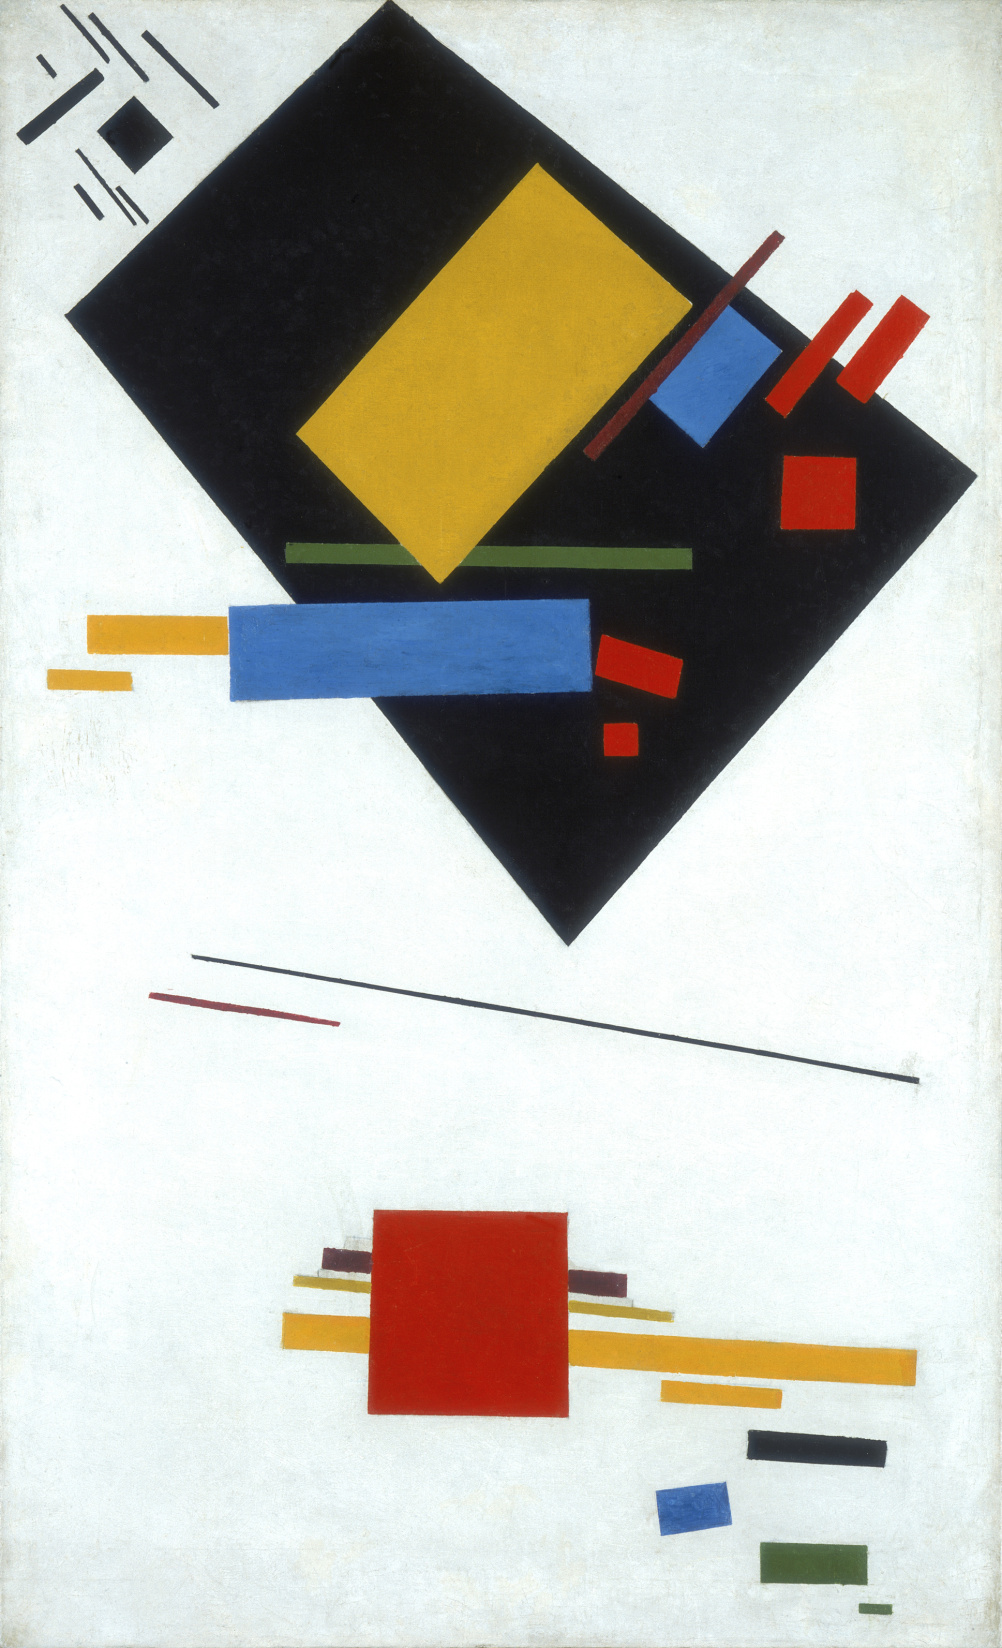 Kazimir Malevich, Suprematist Painting (with Black Trapezium and Red Square) 1915